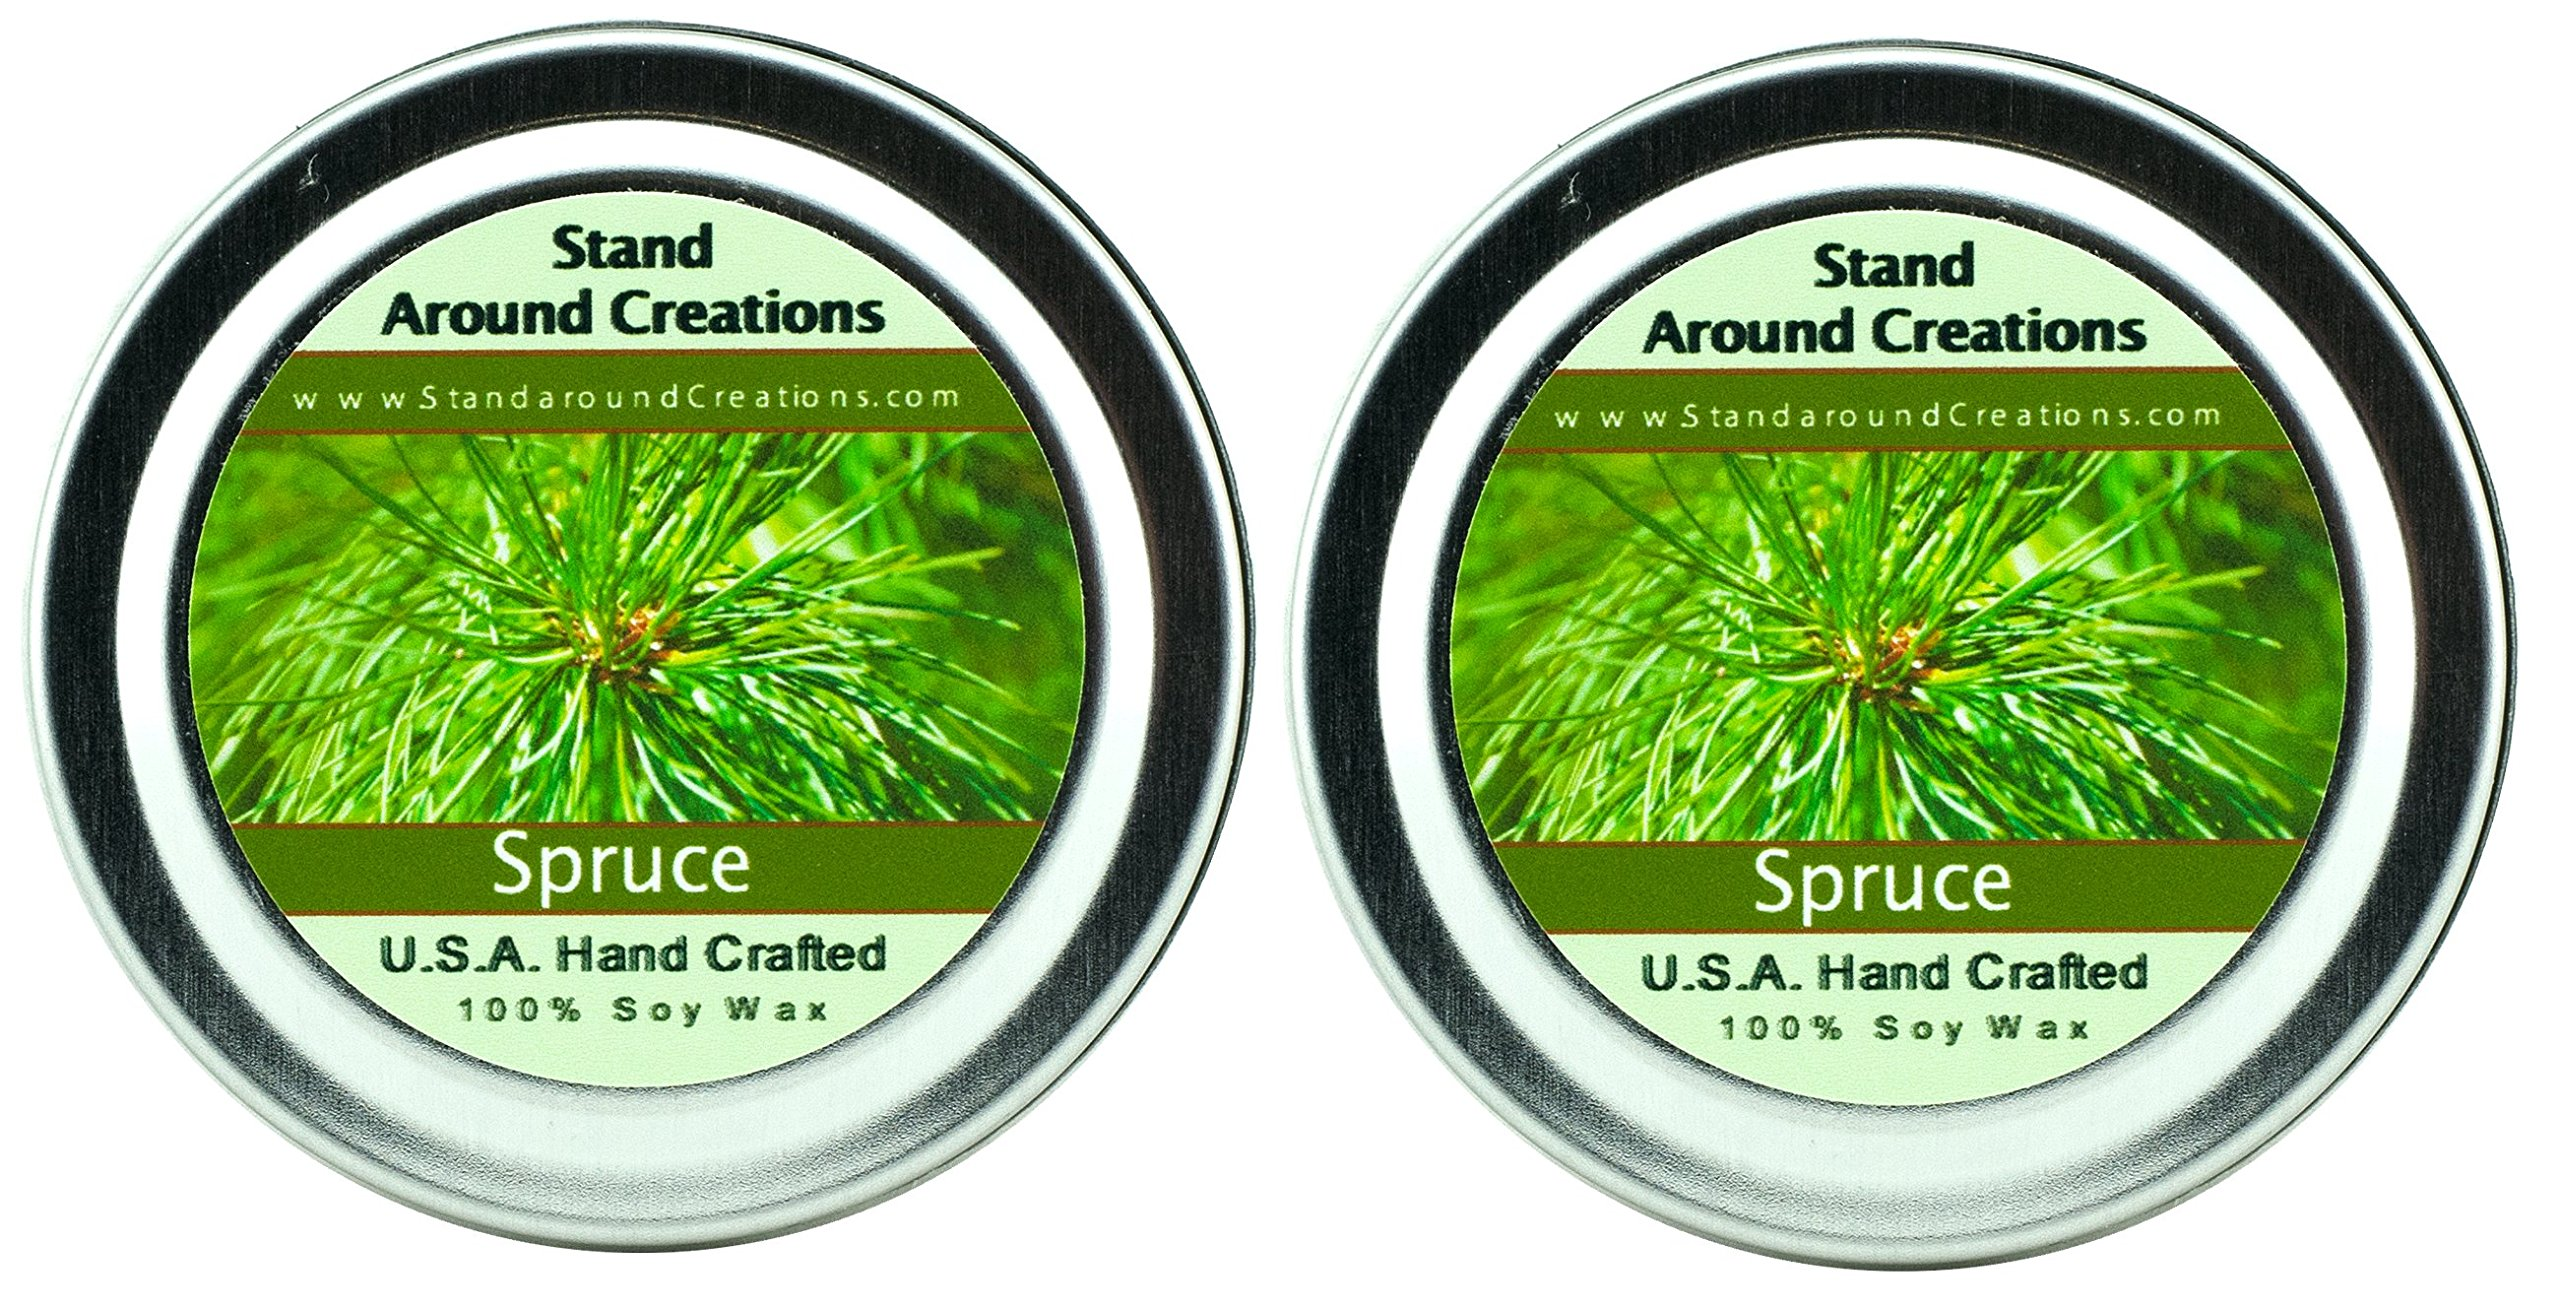 Premium 100% Soy Candles- Set of 2 - 2 oz Tins Spruce: The scent of Frasier or Douglas Fir .Made w/ pine essential oils.